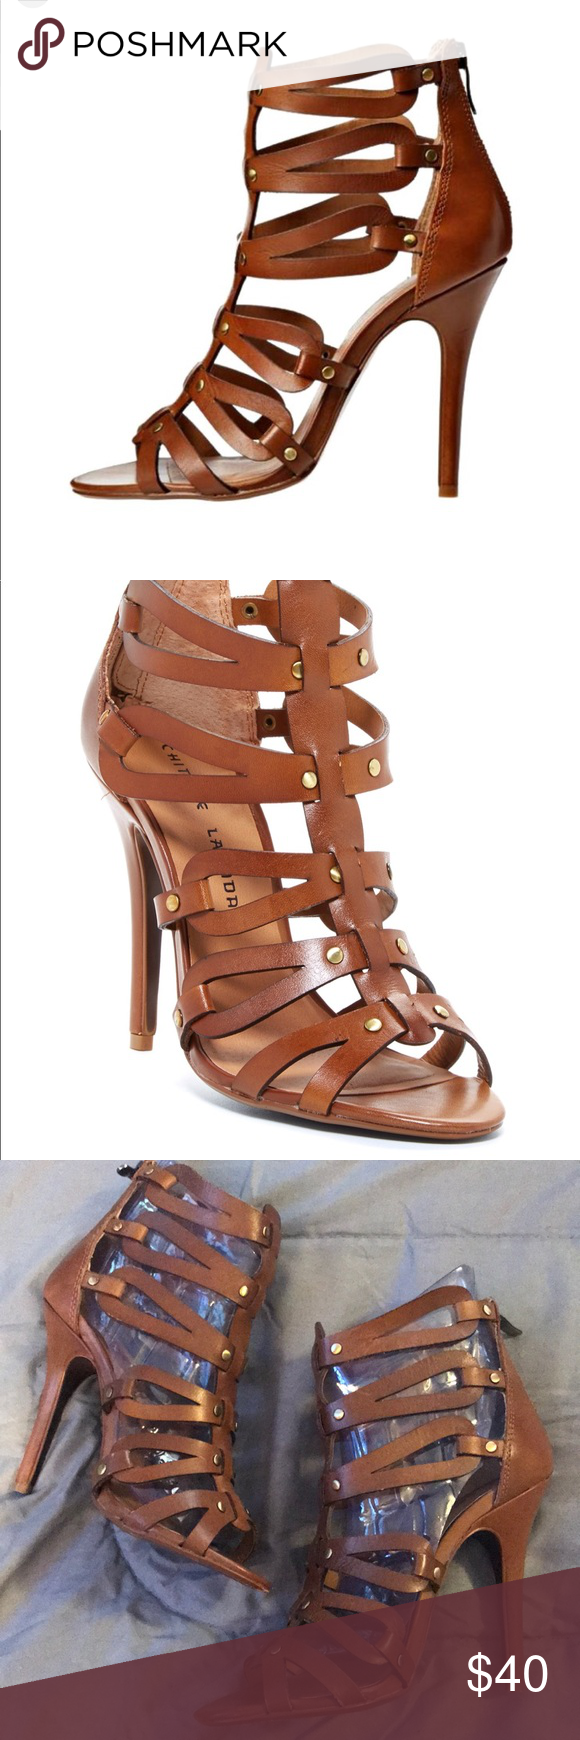 2c5db3e3783d8 Chinese Laundry Jane s Way gladiator heels Sz. 6.5 Chestnut Chinese Laundry  gladiator heels. In great used condition. No box. Size 6.5 Strappy cage  heels ...